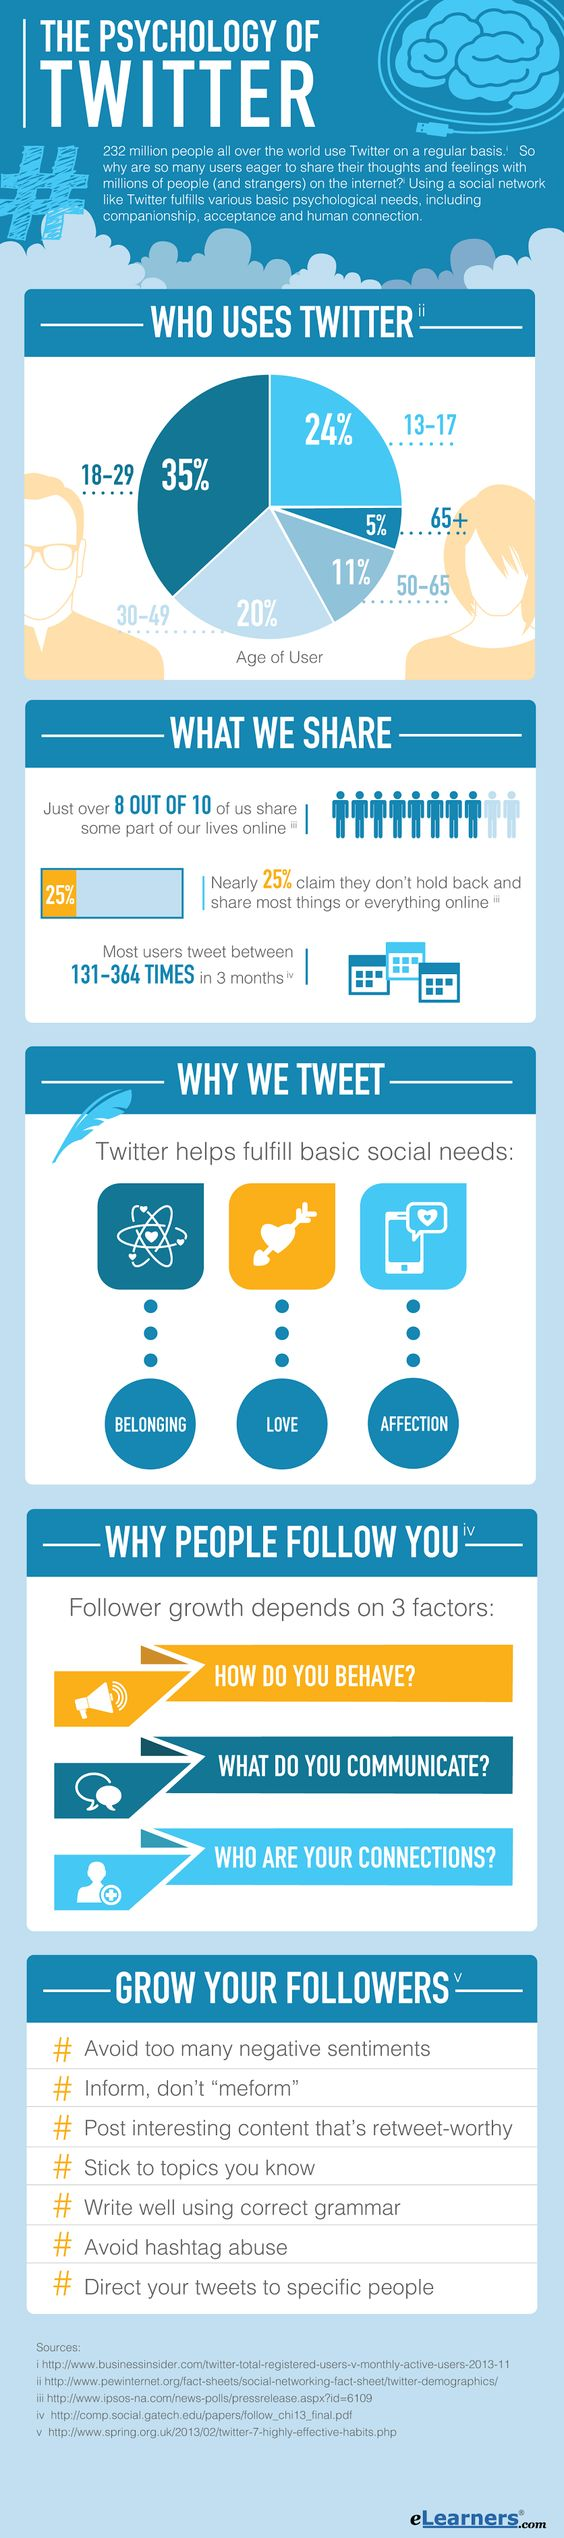 The Psychology of #Twitter - #infographic #socialmedia